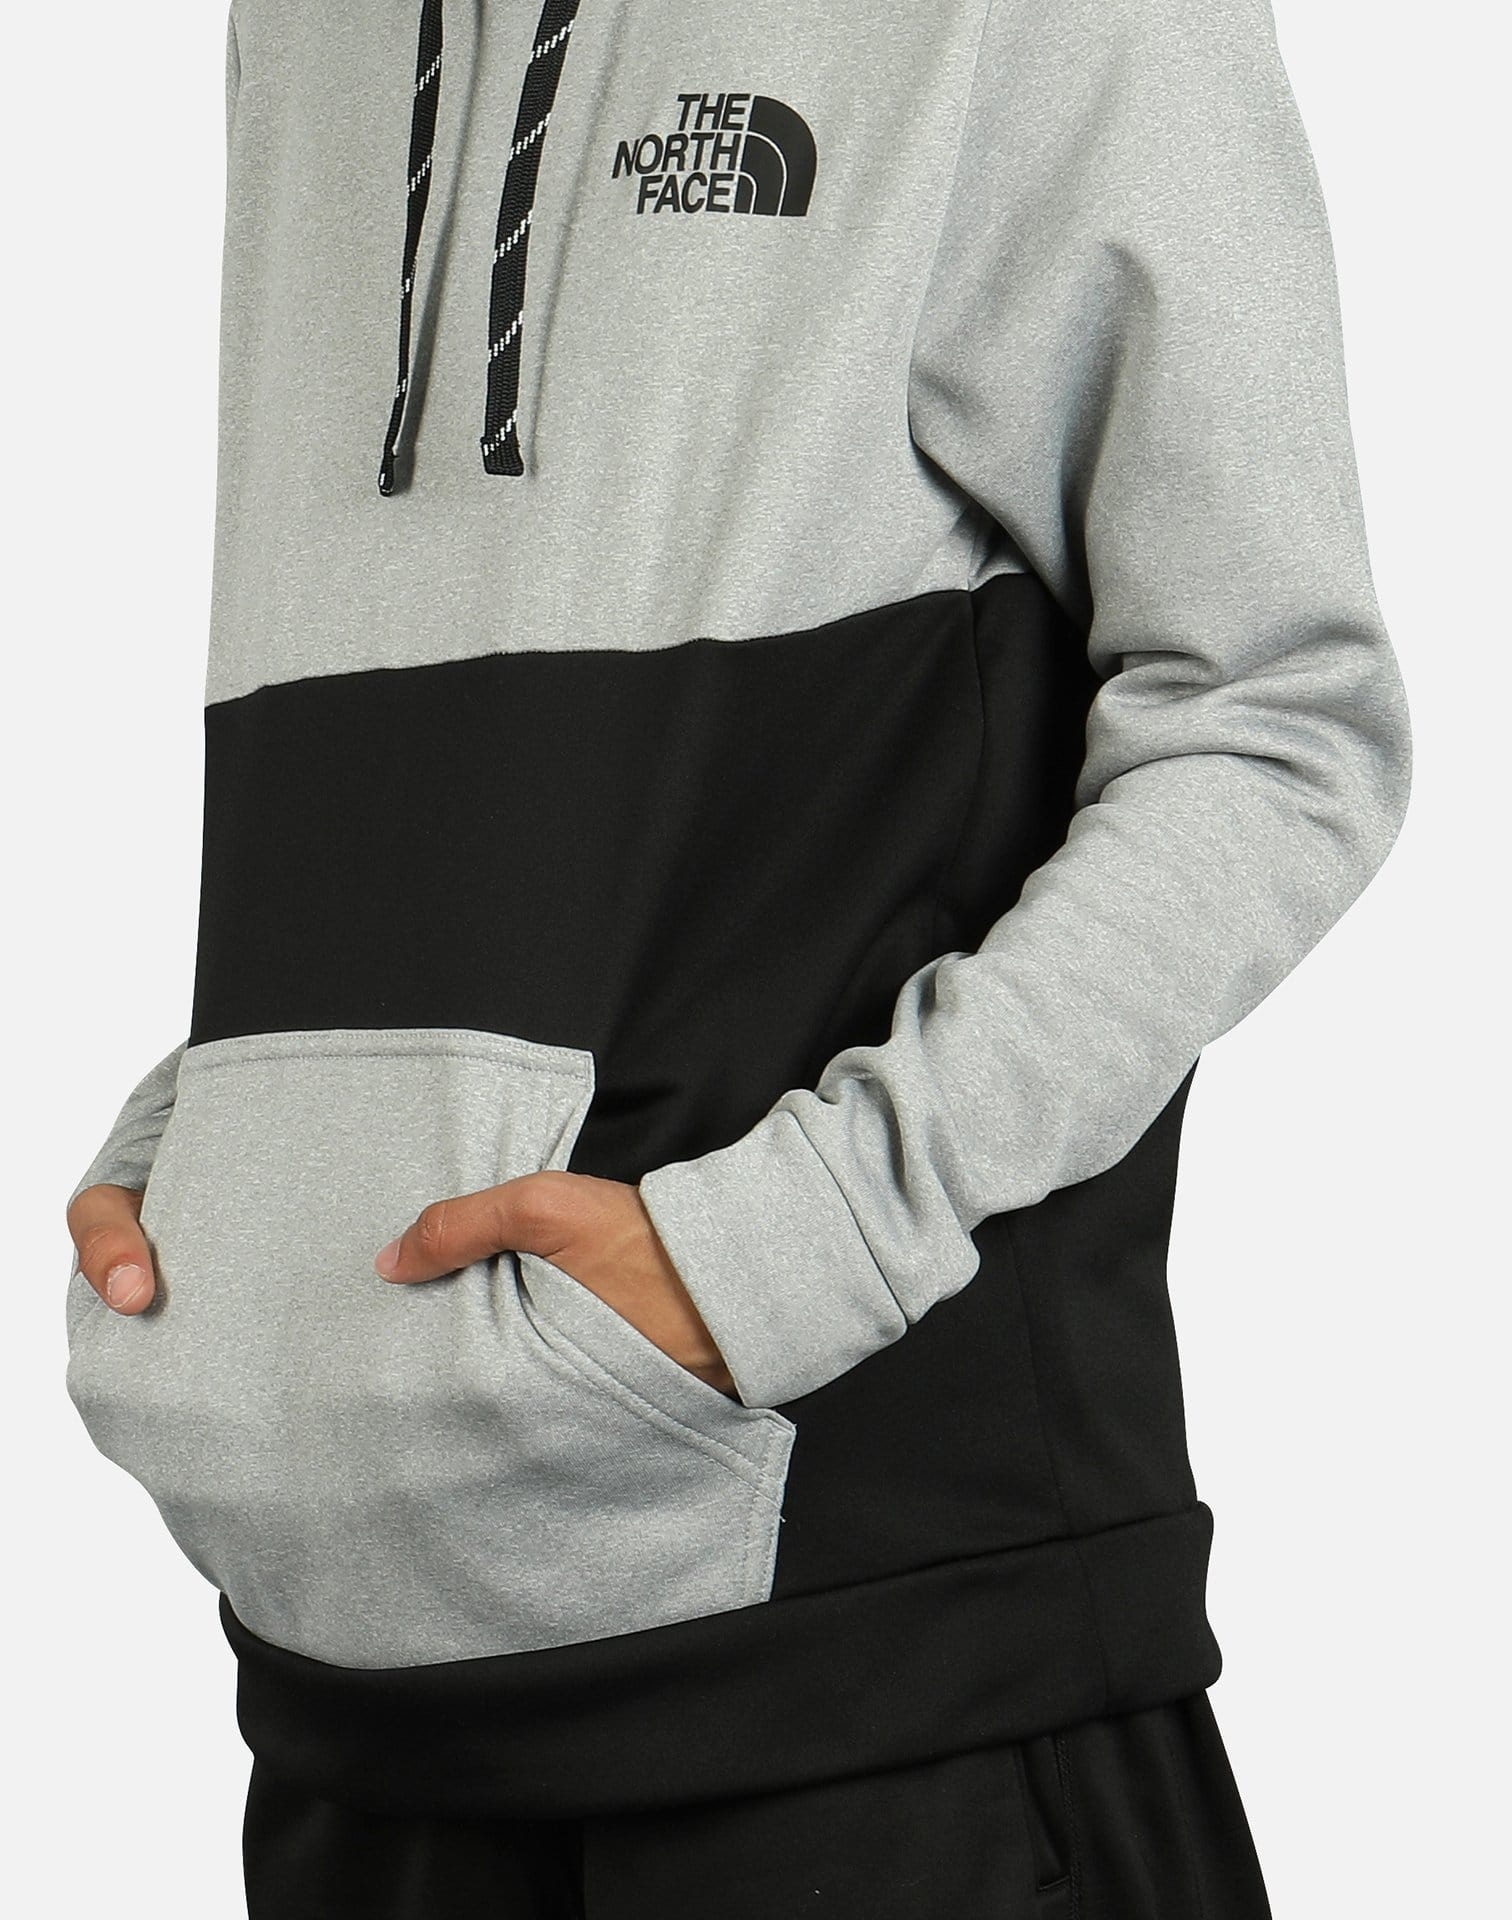 The North Face Men's Surgent Bloc Pullover Hoodie